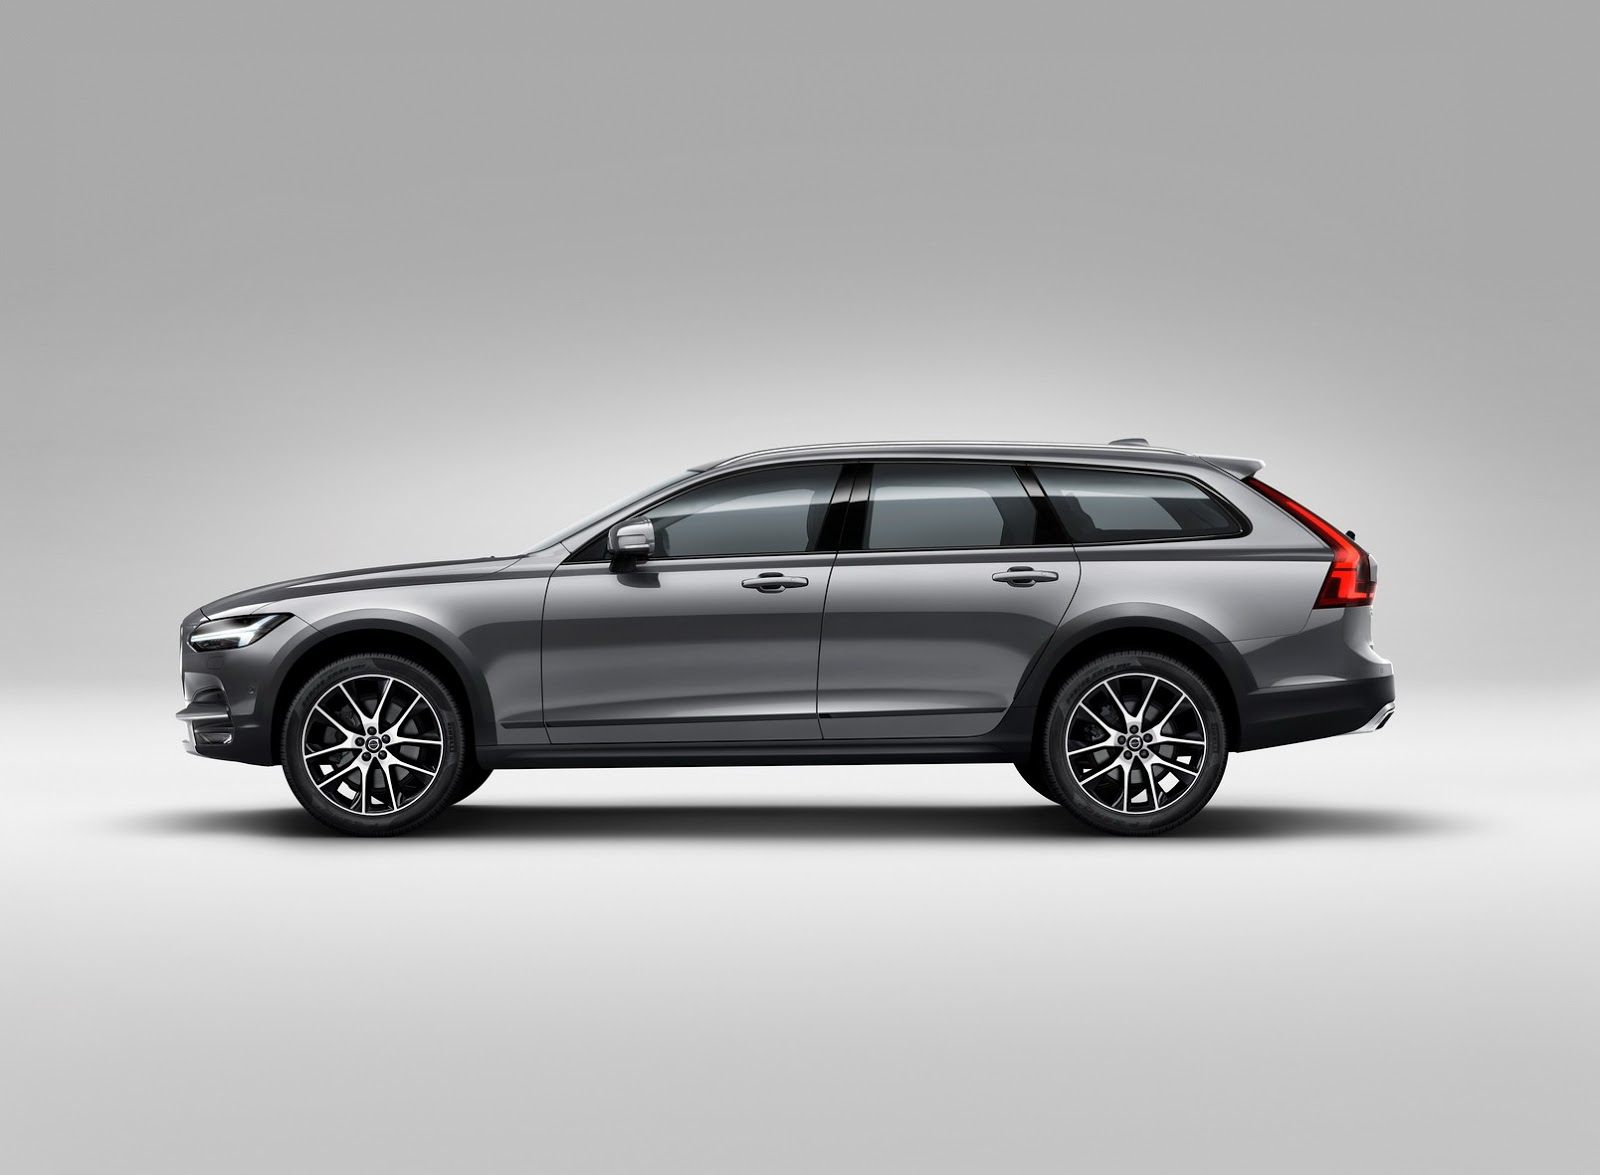 volvo prices u s spec v90 wagon from 49 950 autoevolution. Black Bedroom Furniture Sets. Home Design Ideas